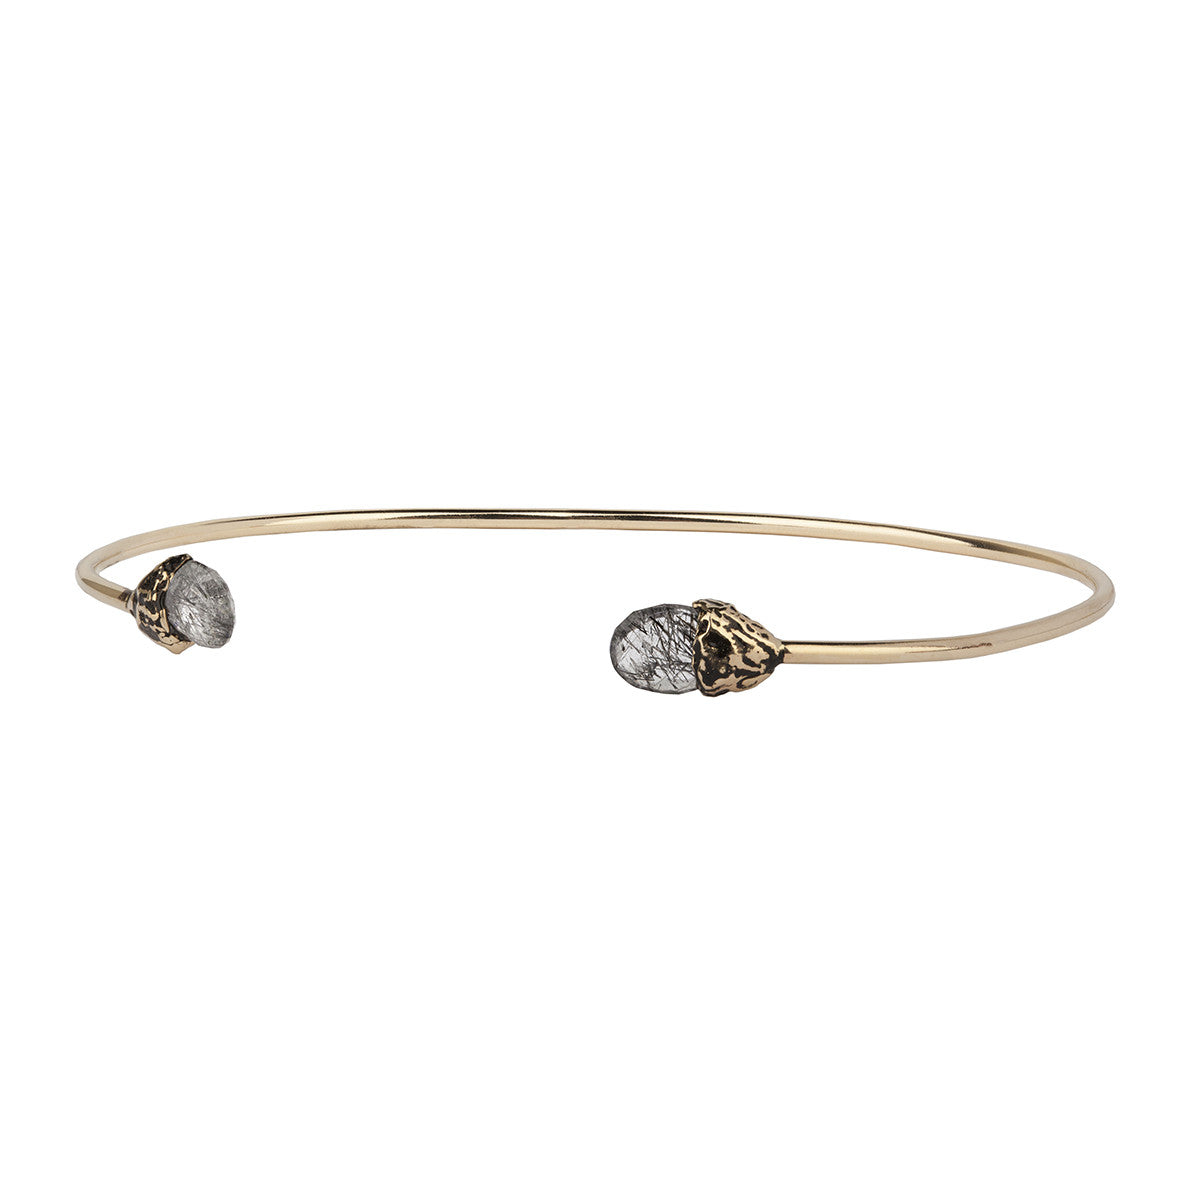 Protection 14K Gold Capped Attraction Charm Open Bangle